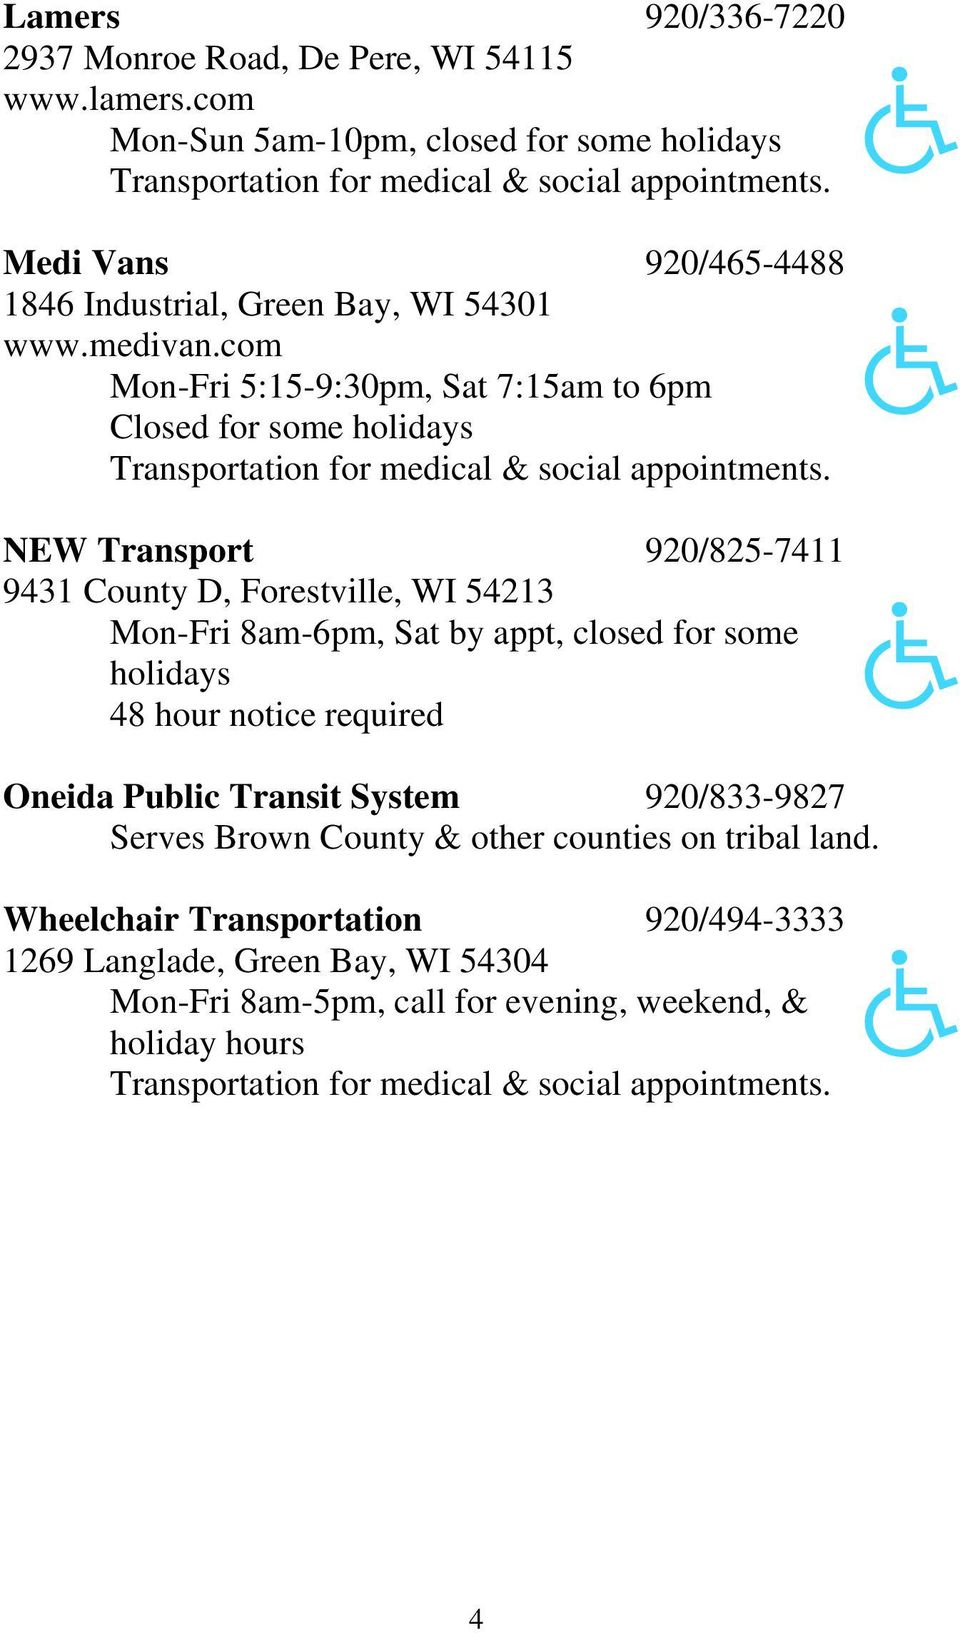 NEW Transport 920/825-7411 9431 County D, Forestville, WI 54213 Mon-Fri 8am-6pm, Sat by appt, closed for some holidays 48 hour notice required Oneida Public Transit System 920/833-9827 Serves